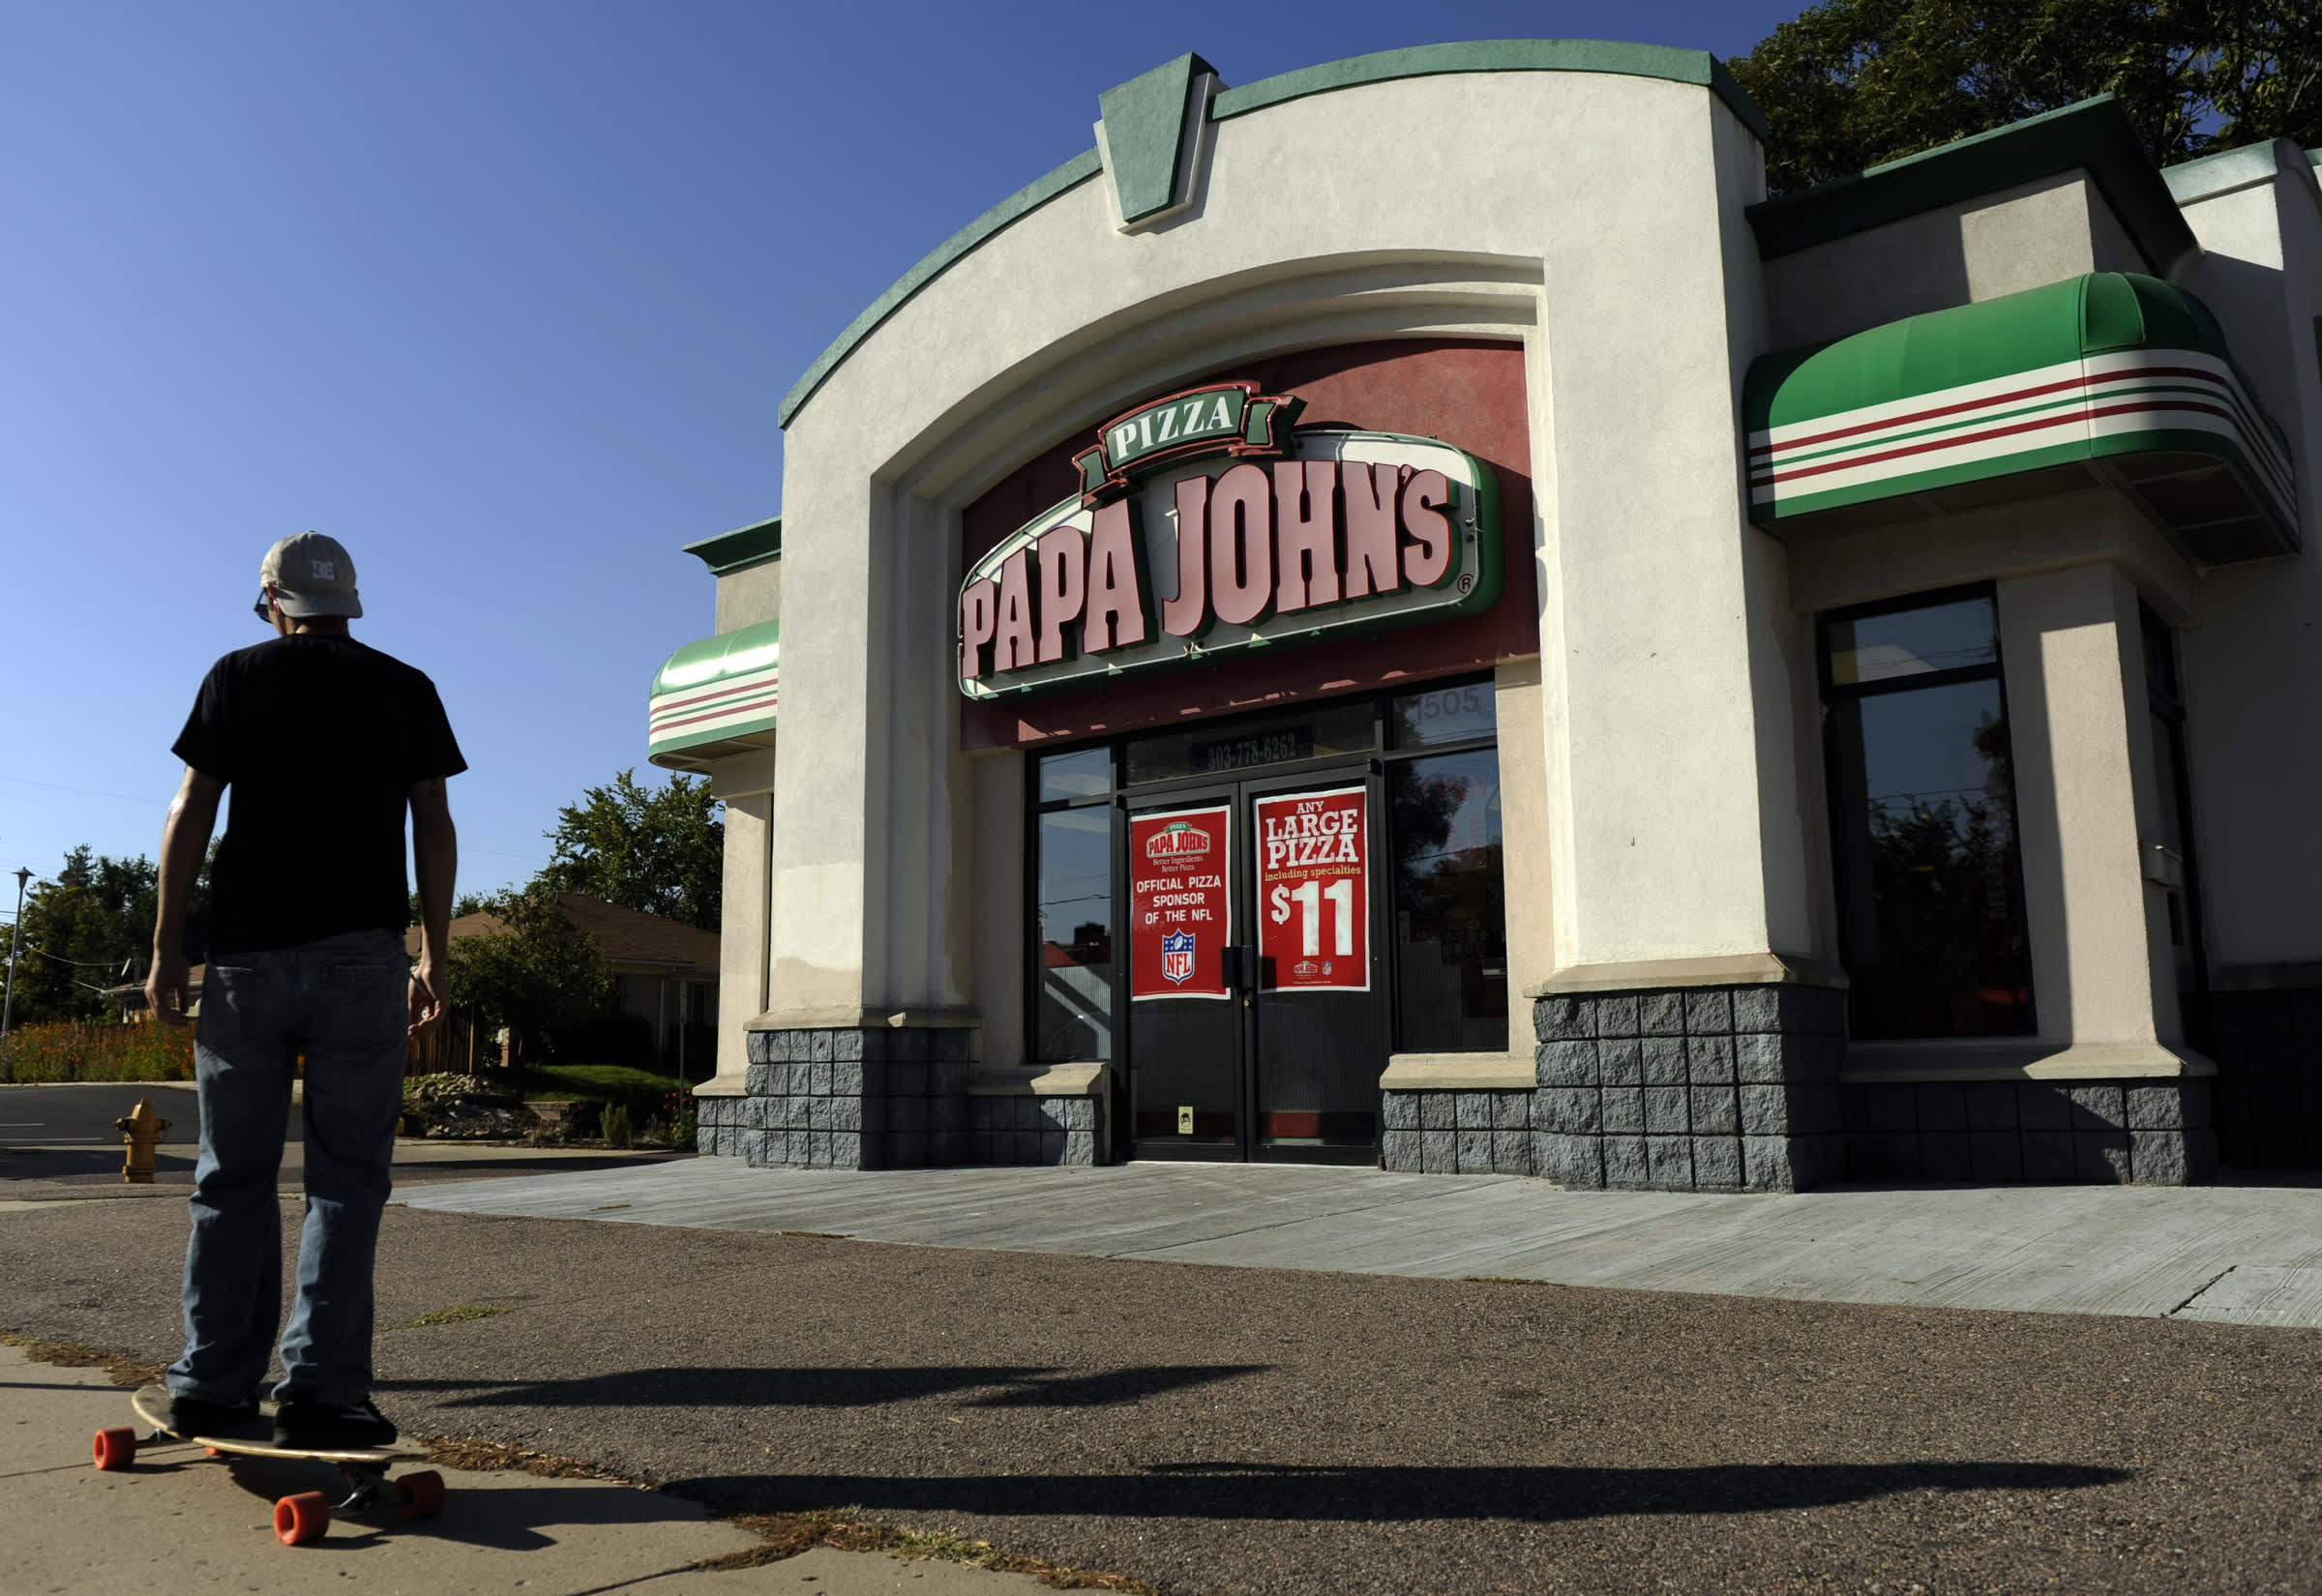 Papa John's will spend extra $80 million on franchisee aid and advertising